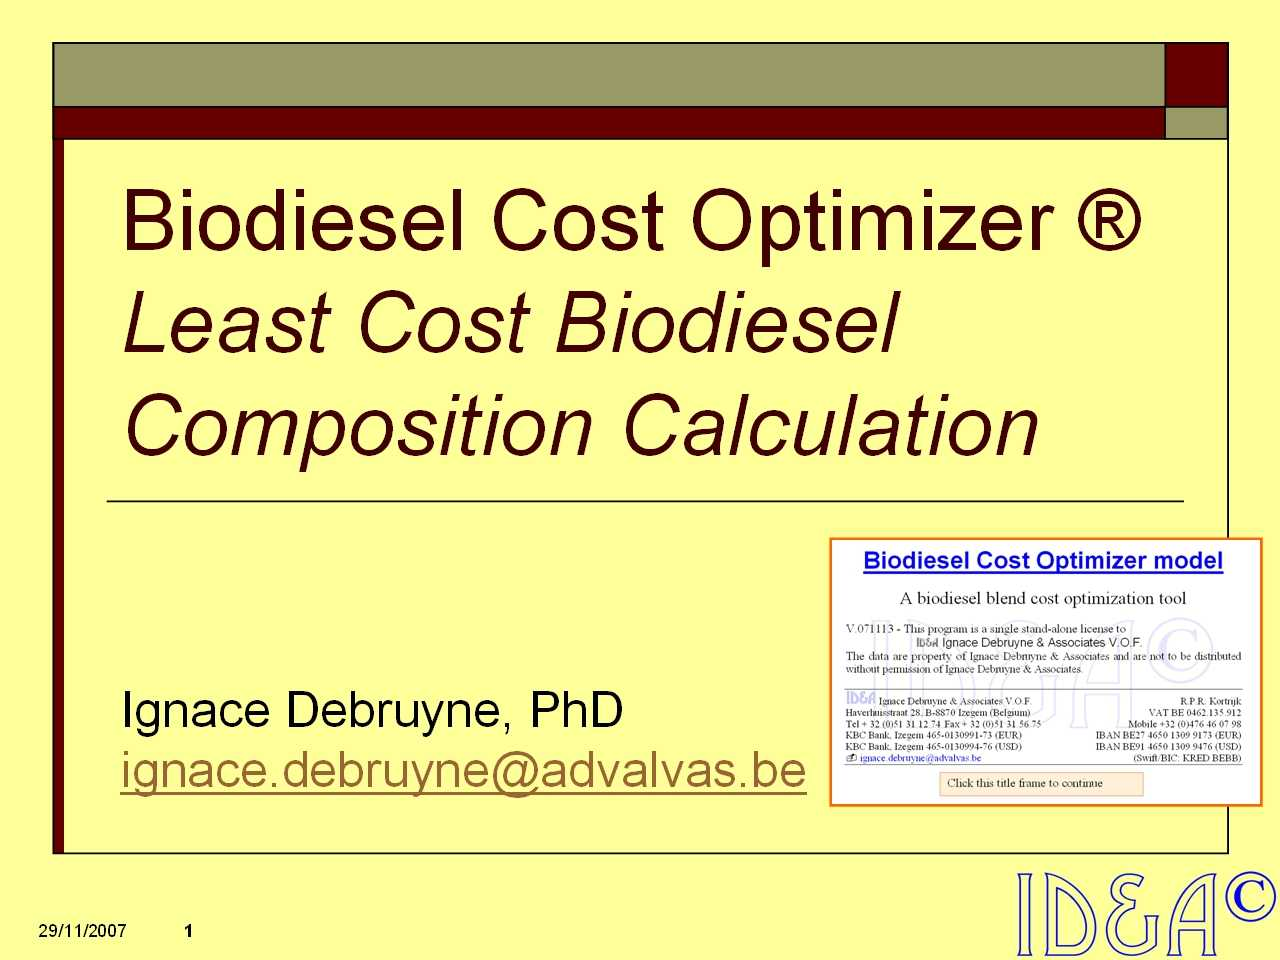 Biodesel Cost Optimizer information pack